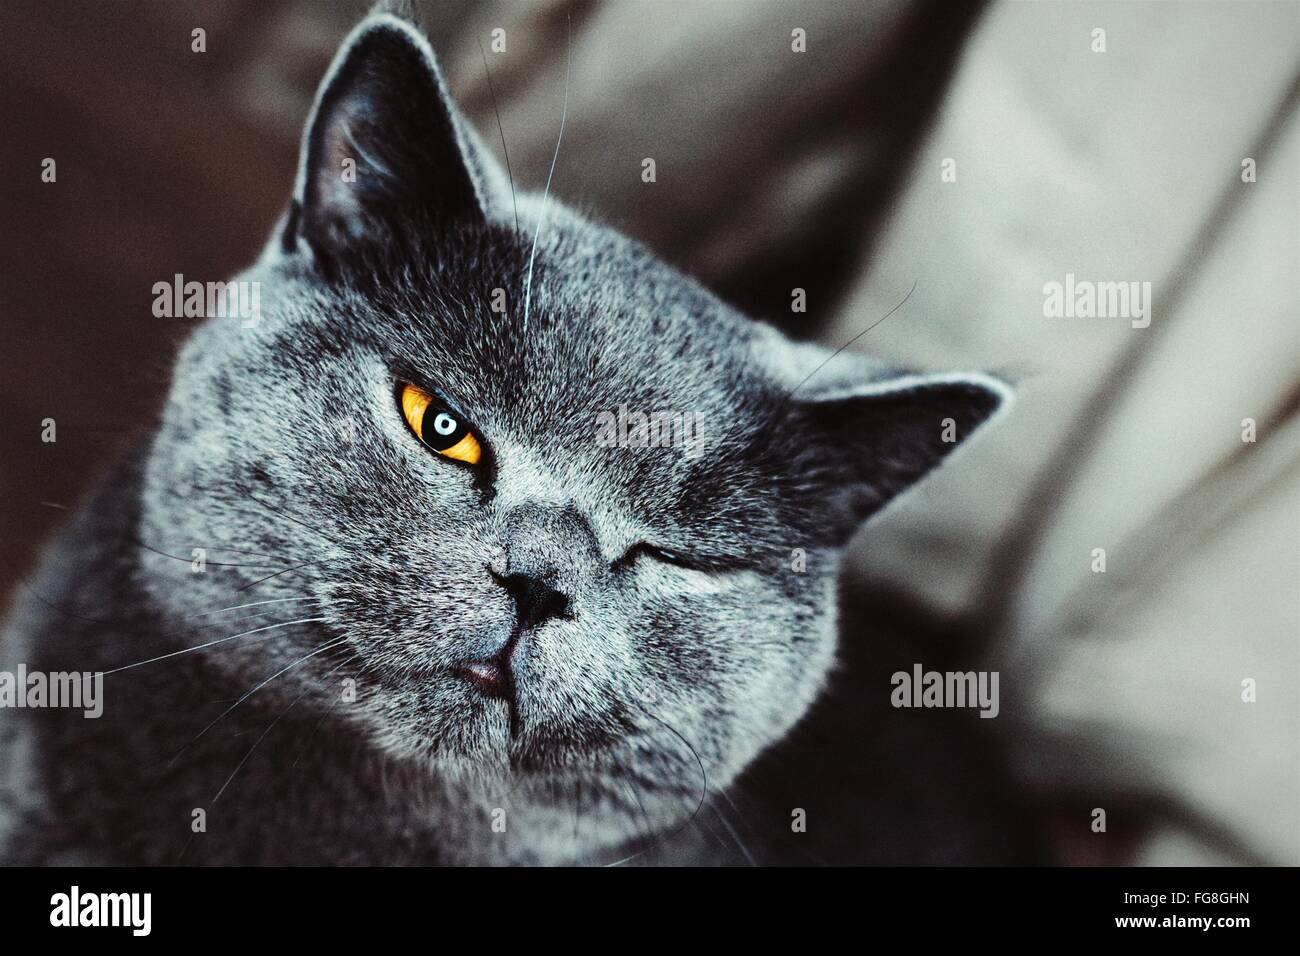 Portrait Portrait de chat Chartreux Winking Photo Stock